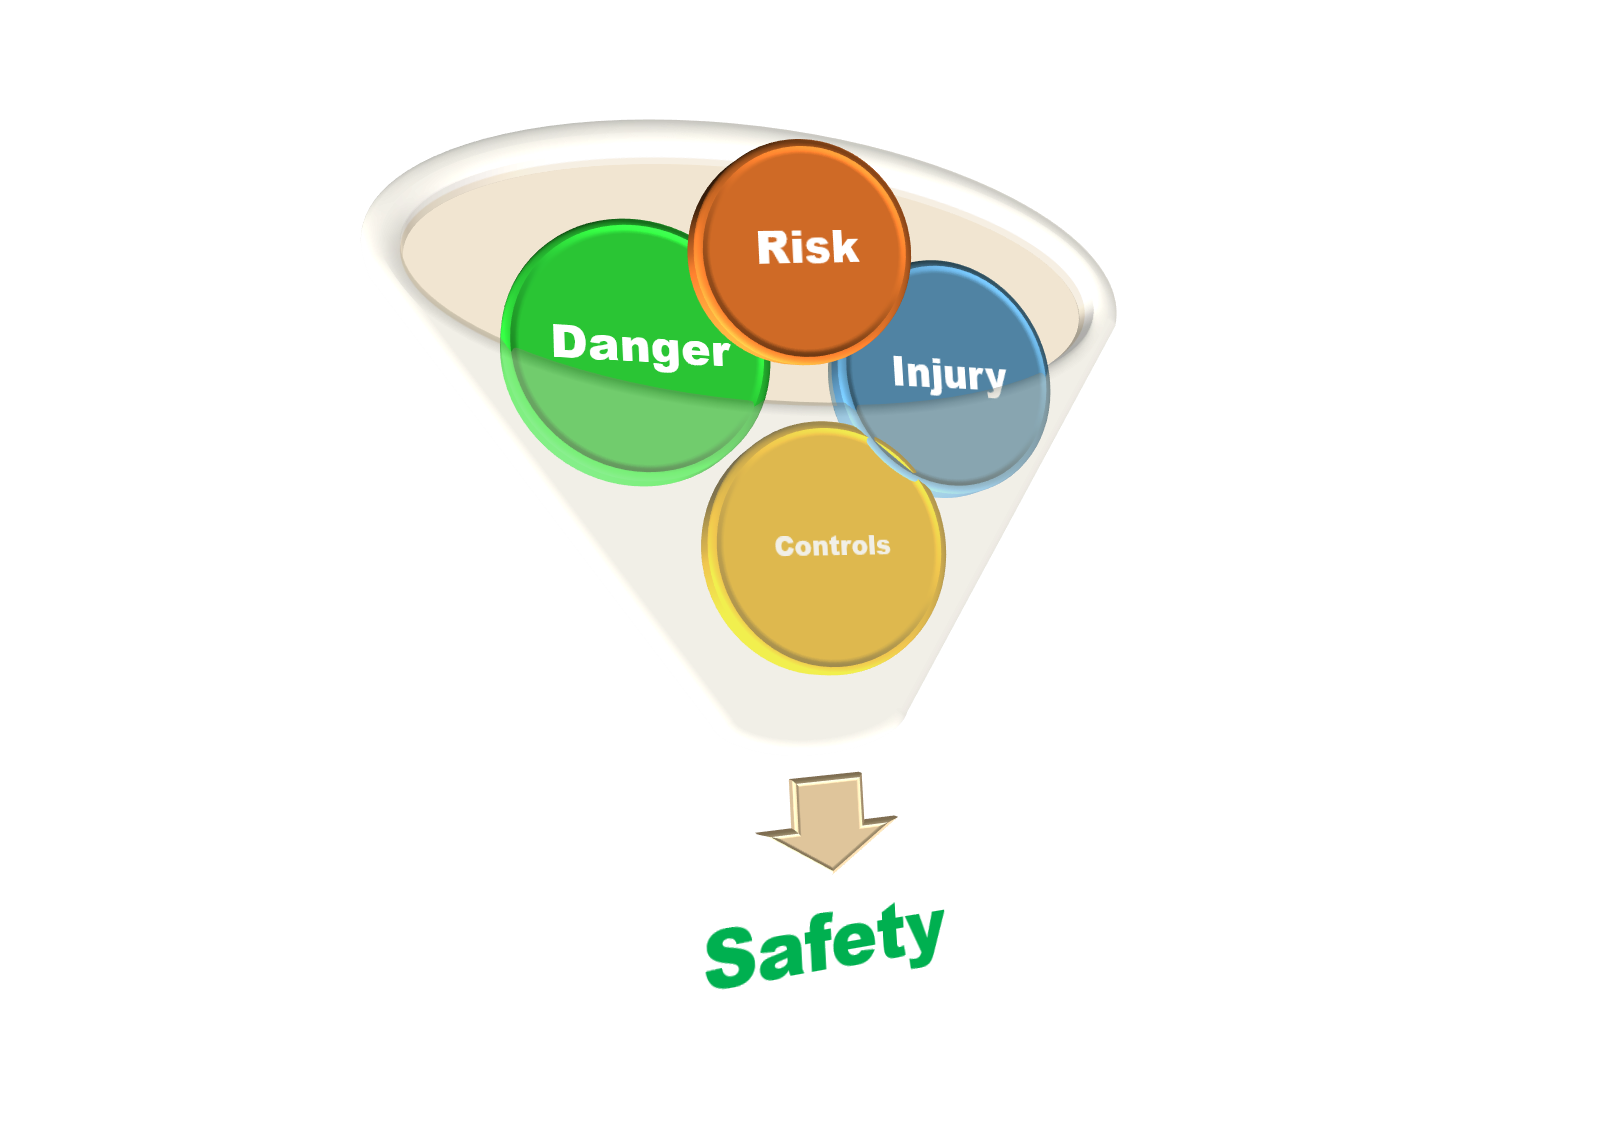 Understand the difference between Safety, Occupational